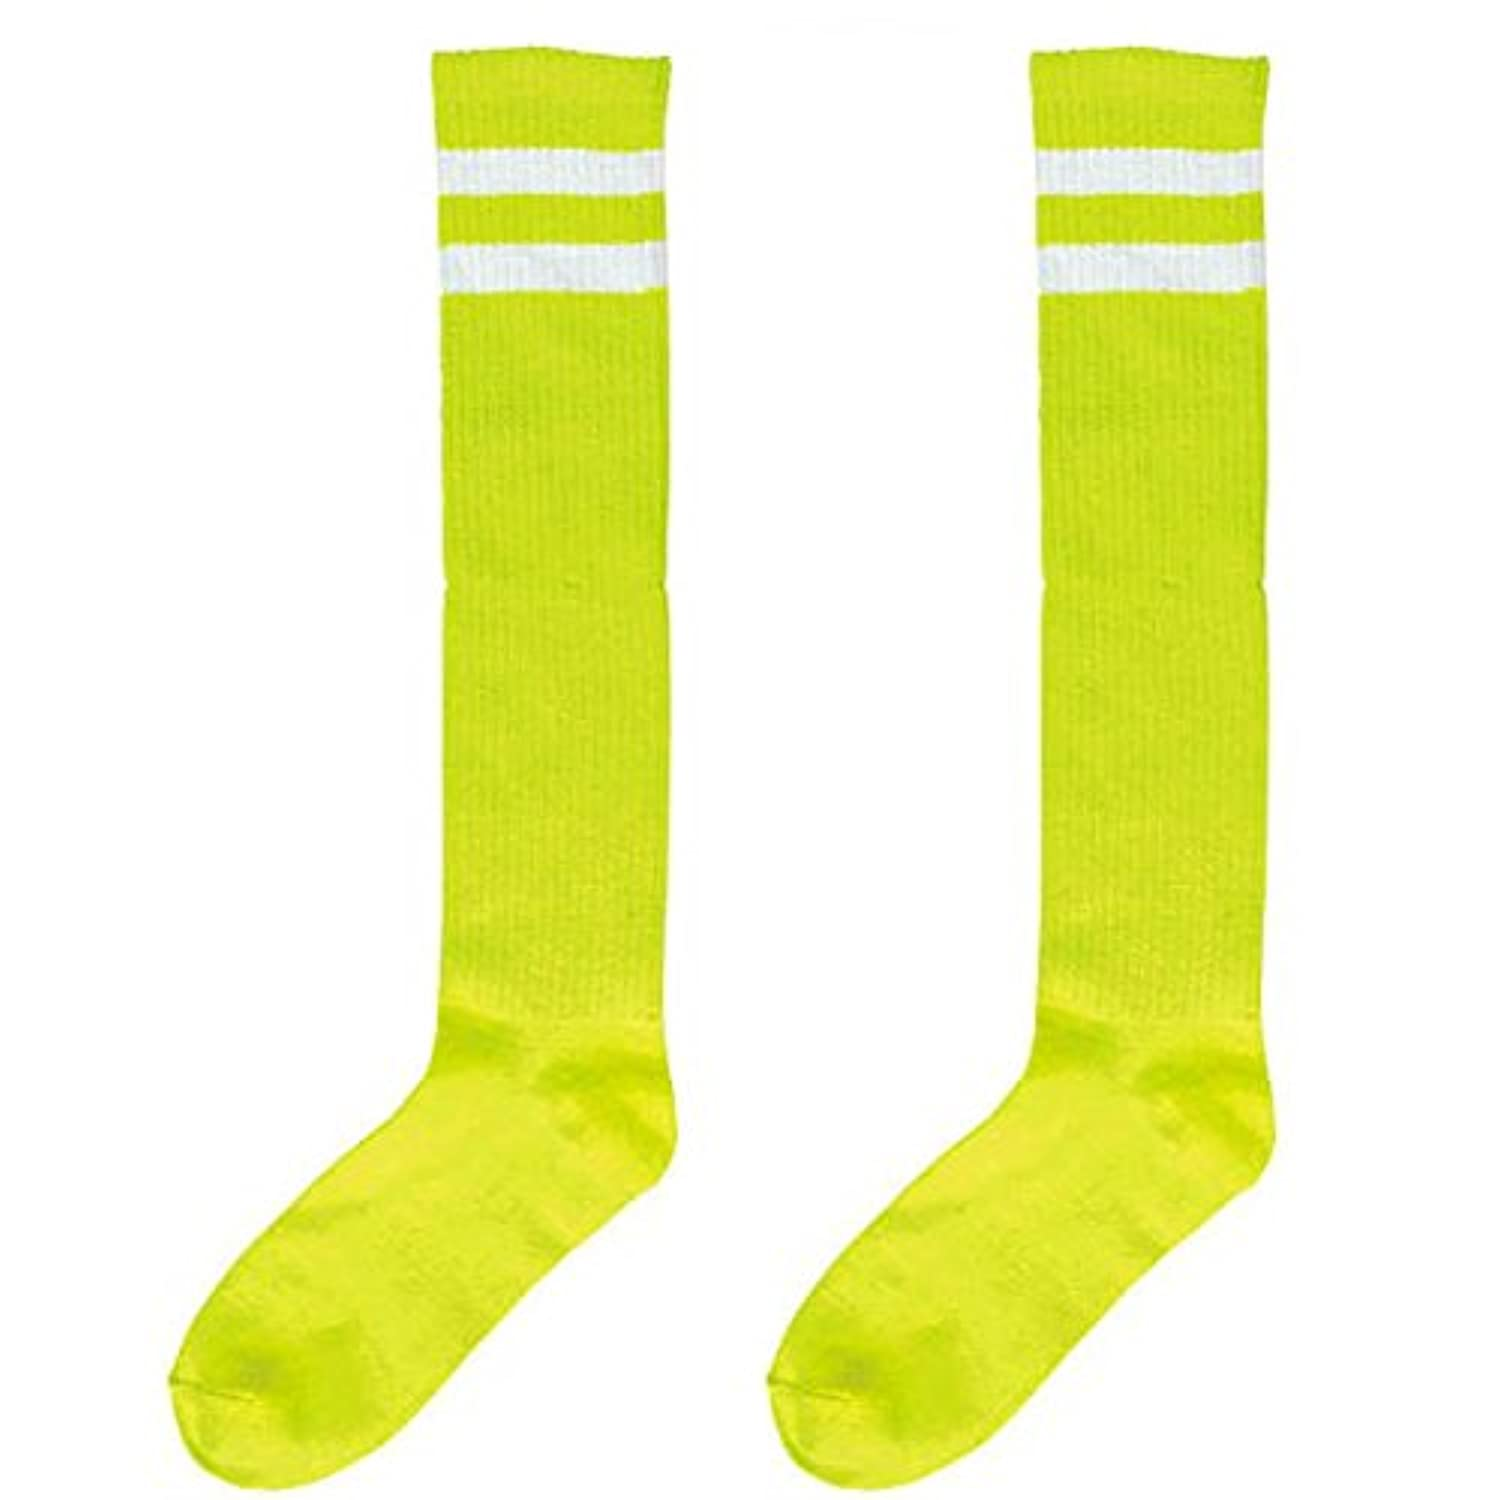 Amscan Standard Knee High Socks with White Stripes Sports Costume Party Apparel, Neon Green, Fabric, 19